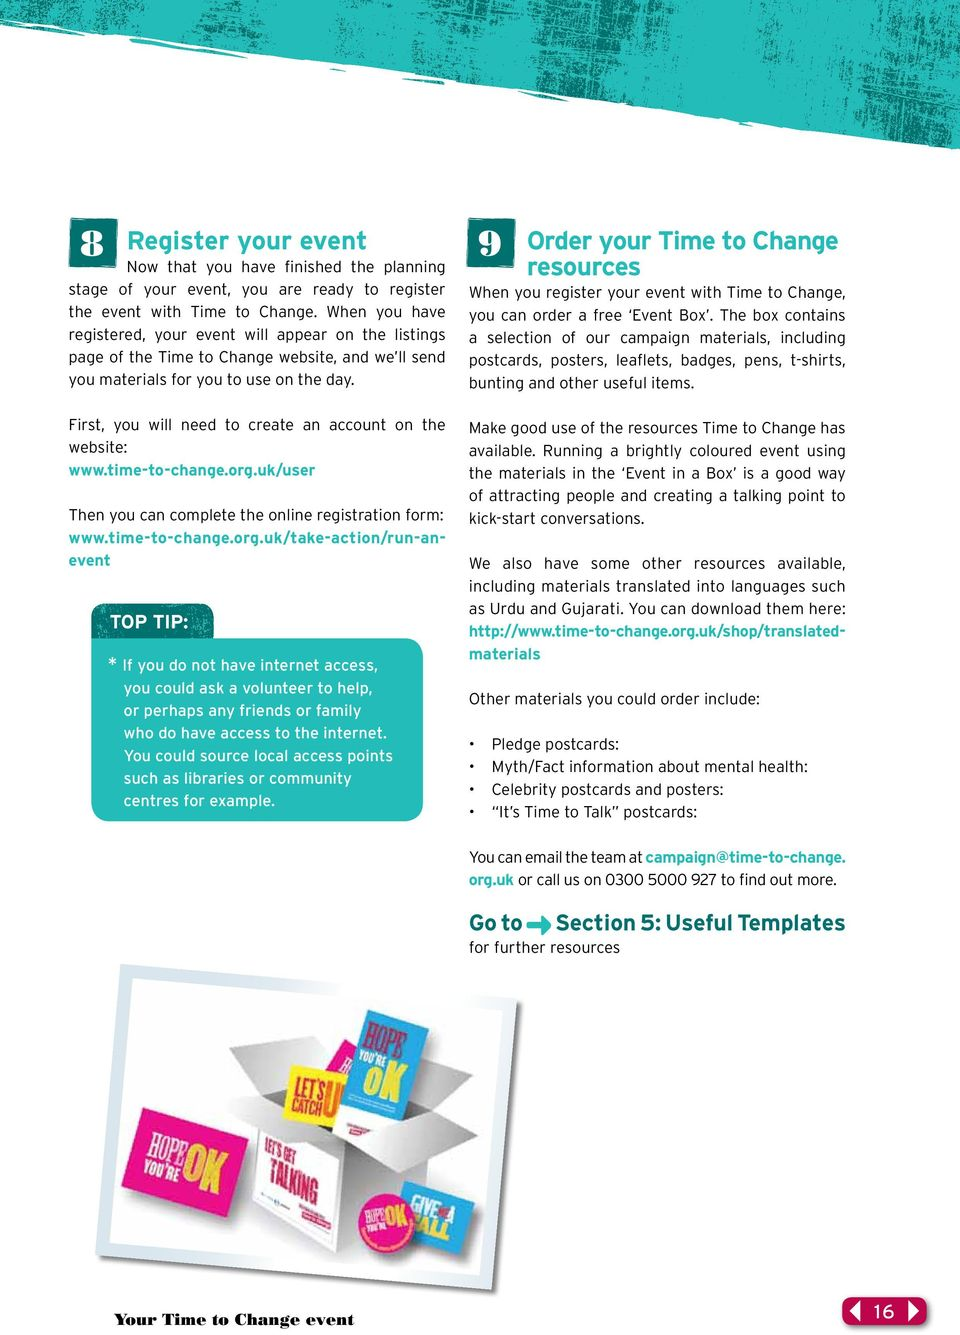 Order your Time to Change resources When you register your event with Time to Change, you can order a free Event Box.